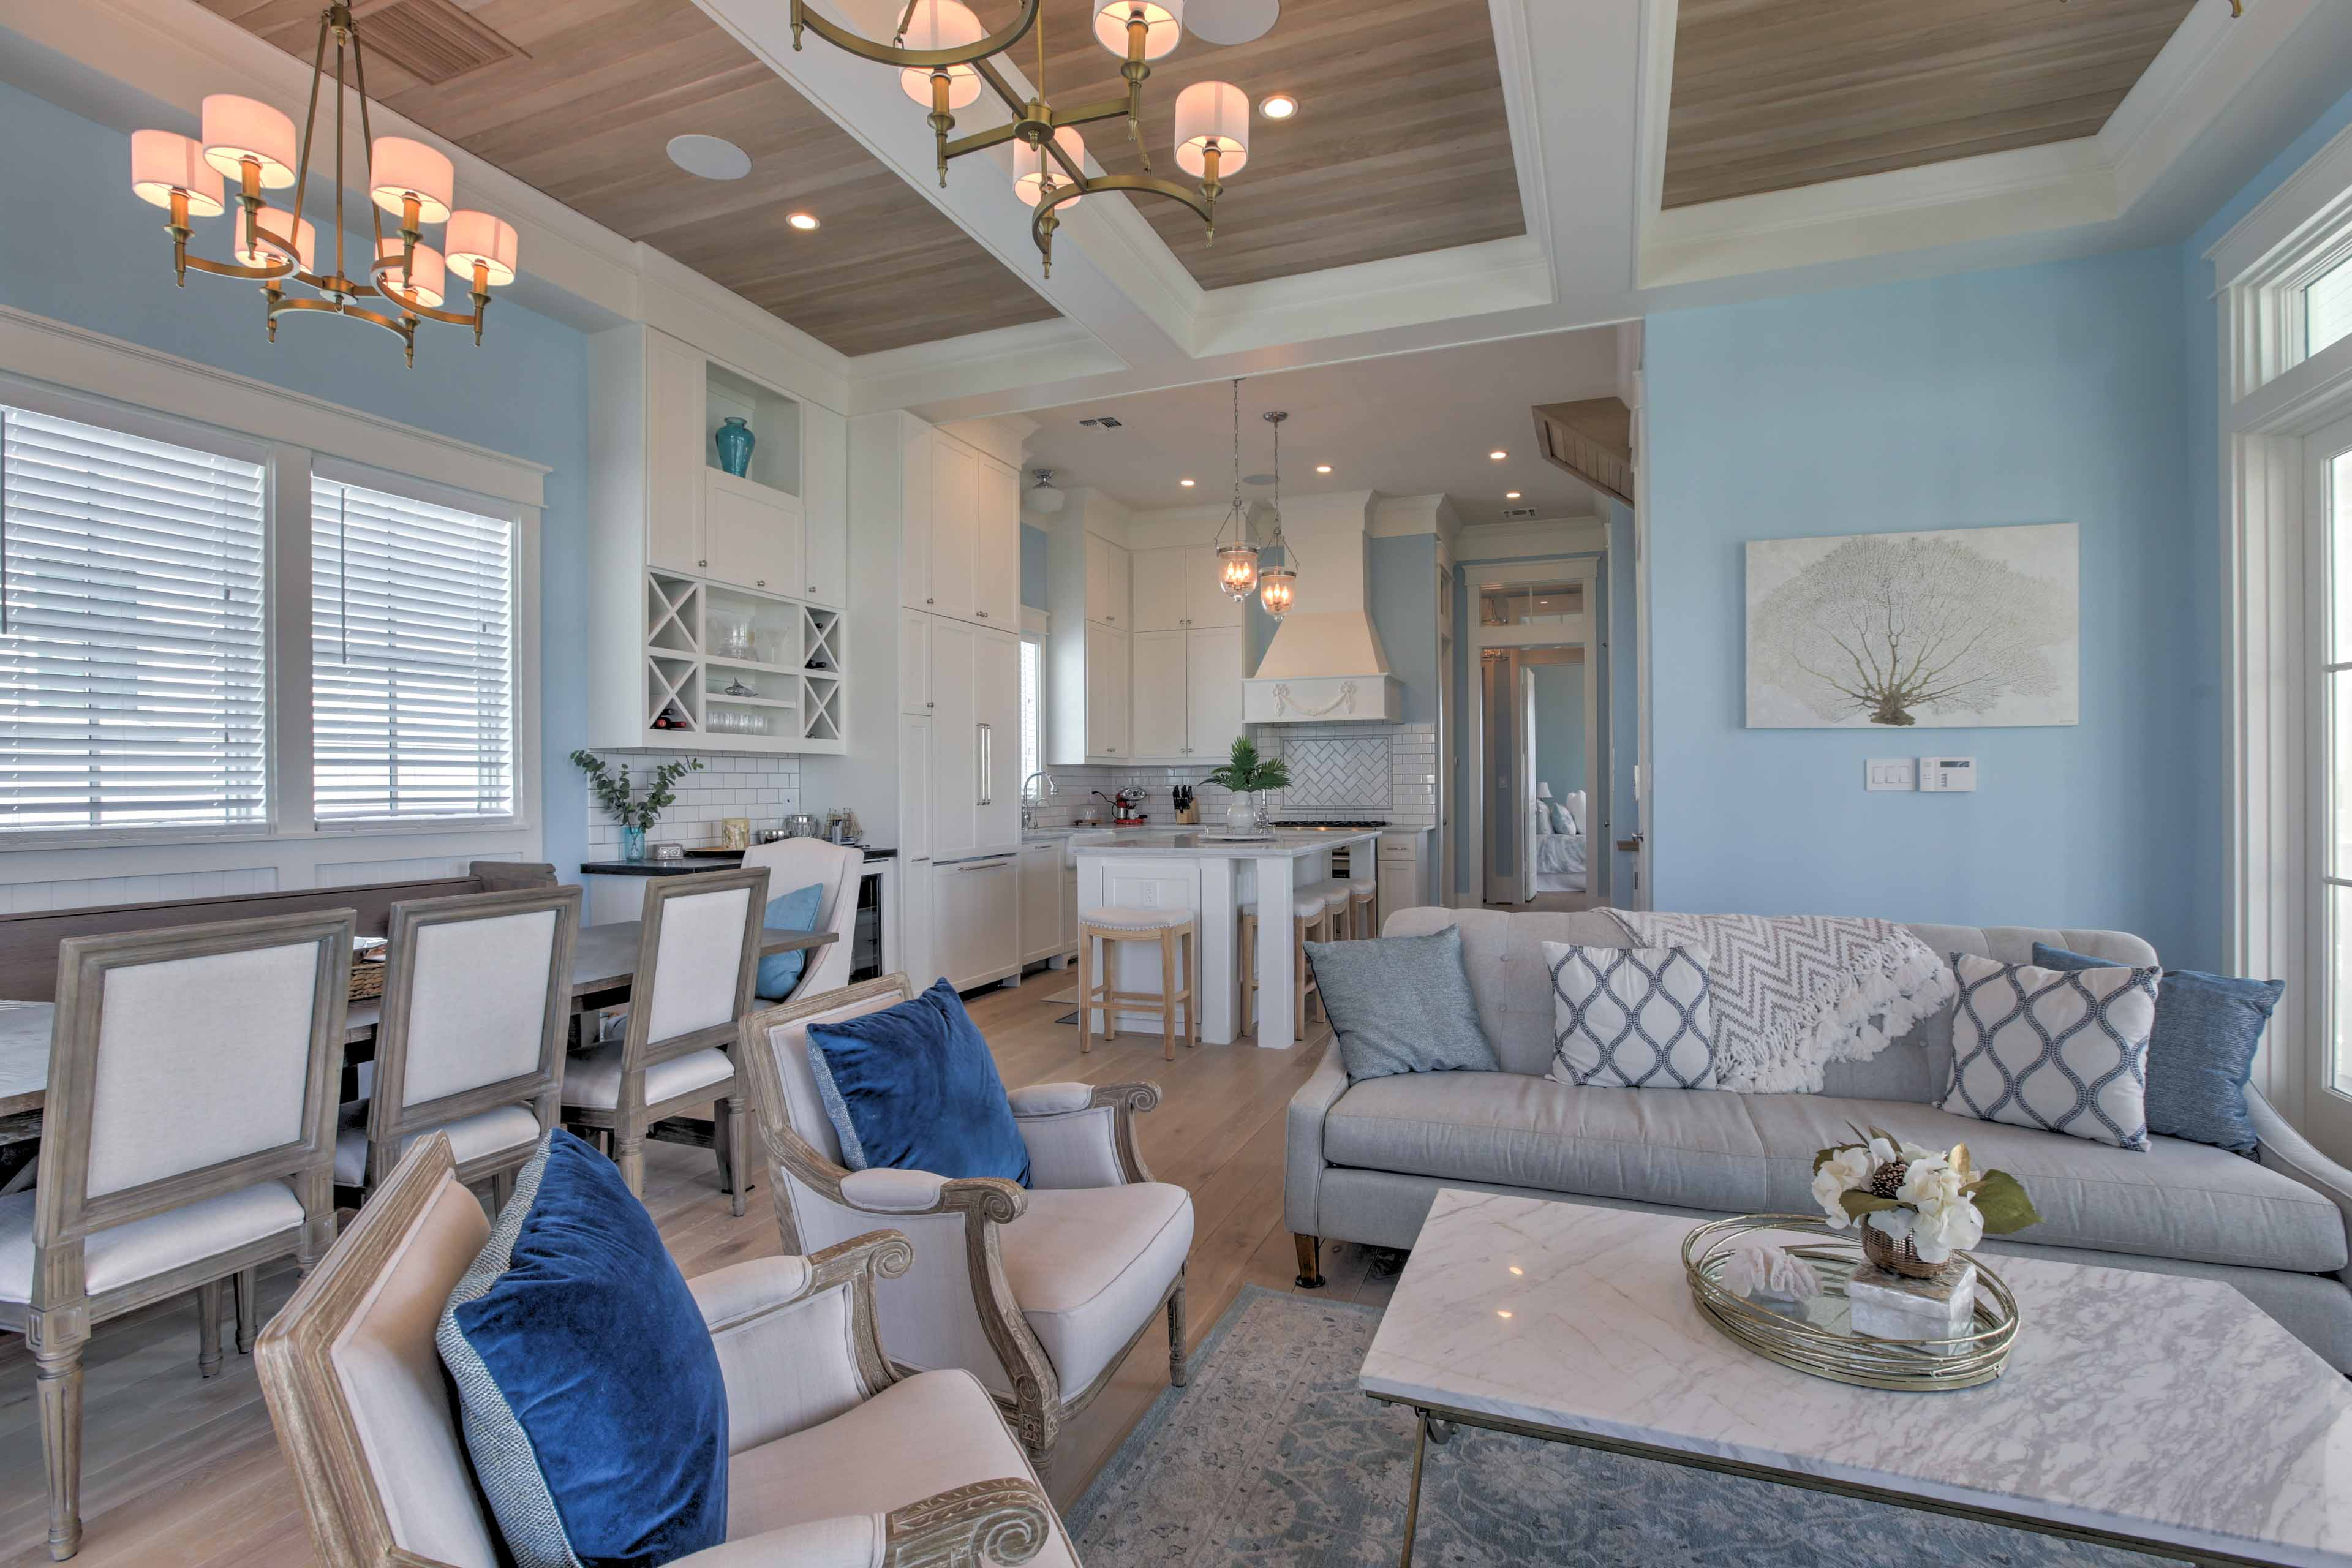 The open floor plan makes the spacious home feel even larger than it is!